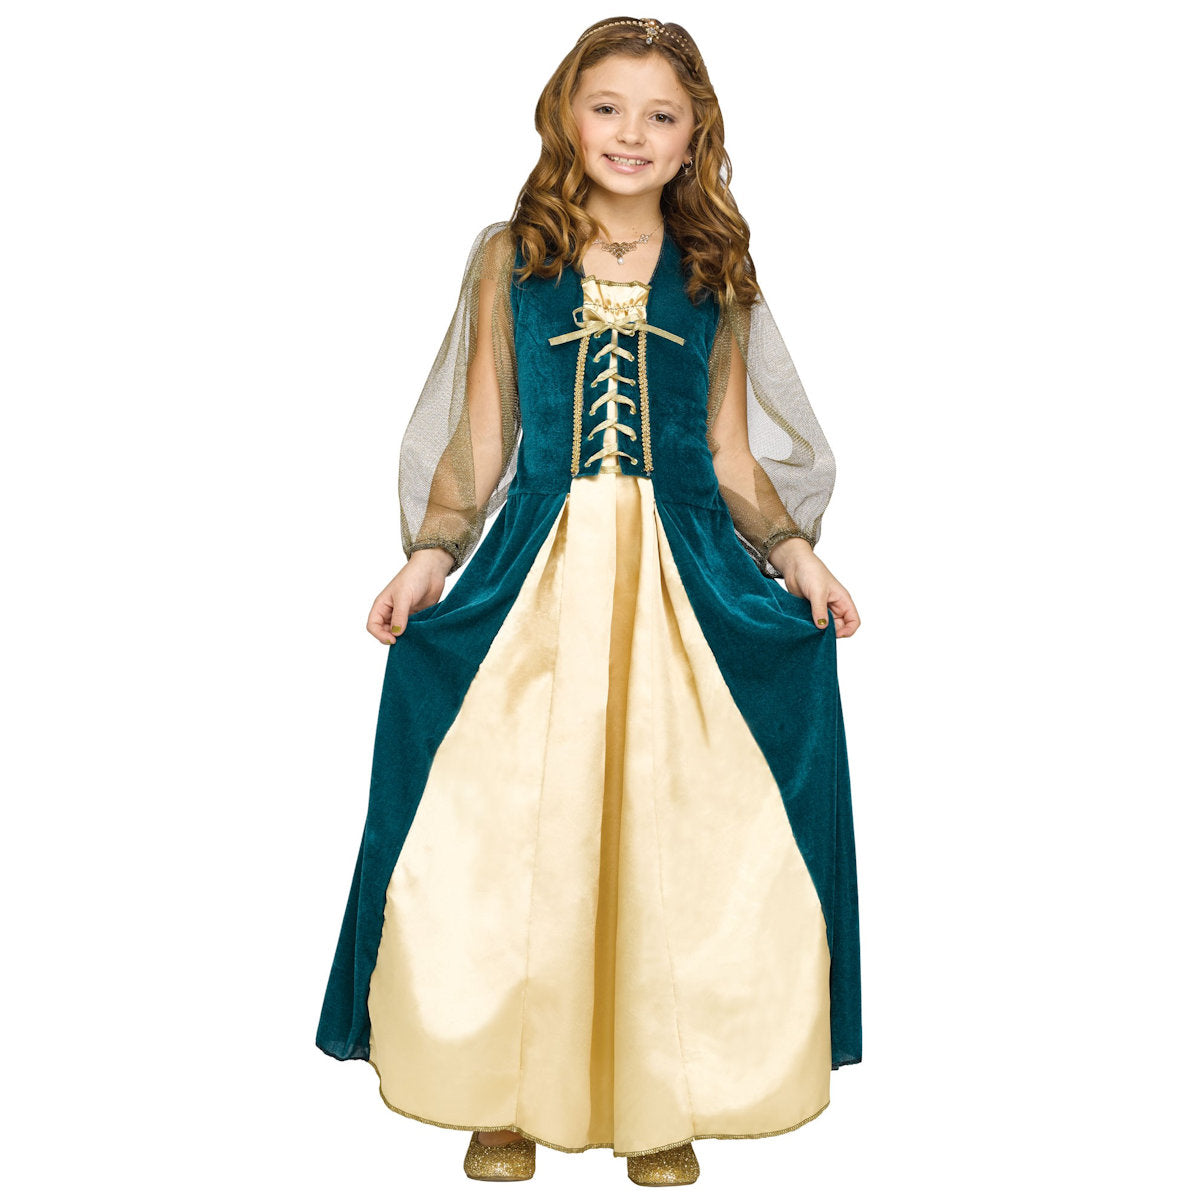 Medieval Juliet Fairytale Princess Girls Costume